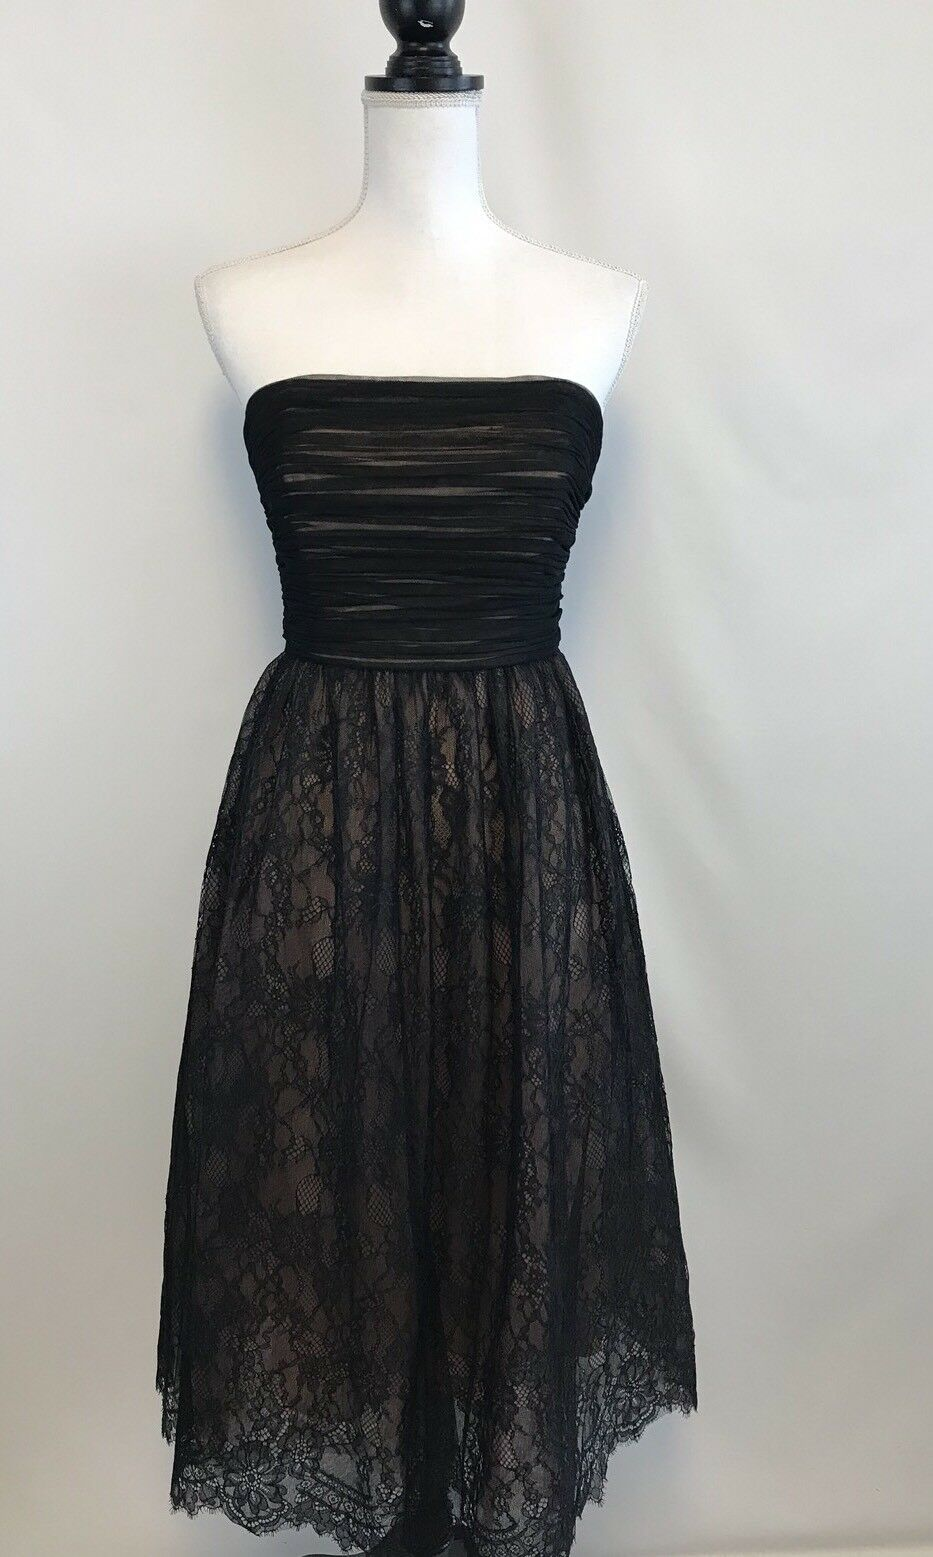 New J Crew Strapless Lace Dress schwarz Sz 6